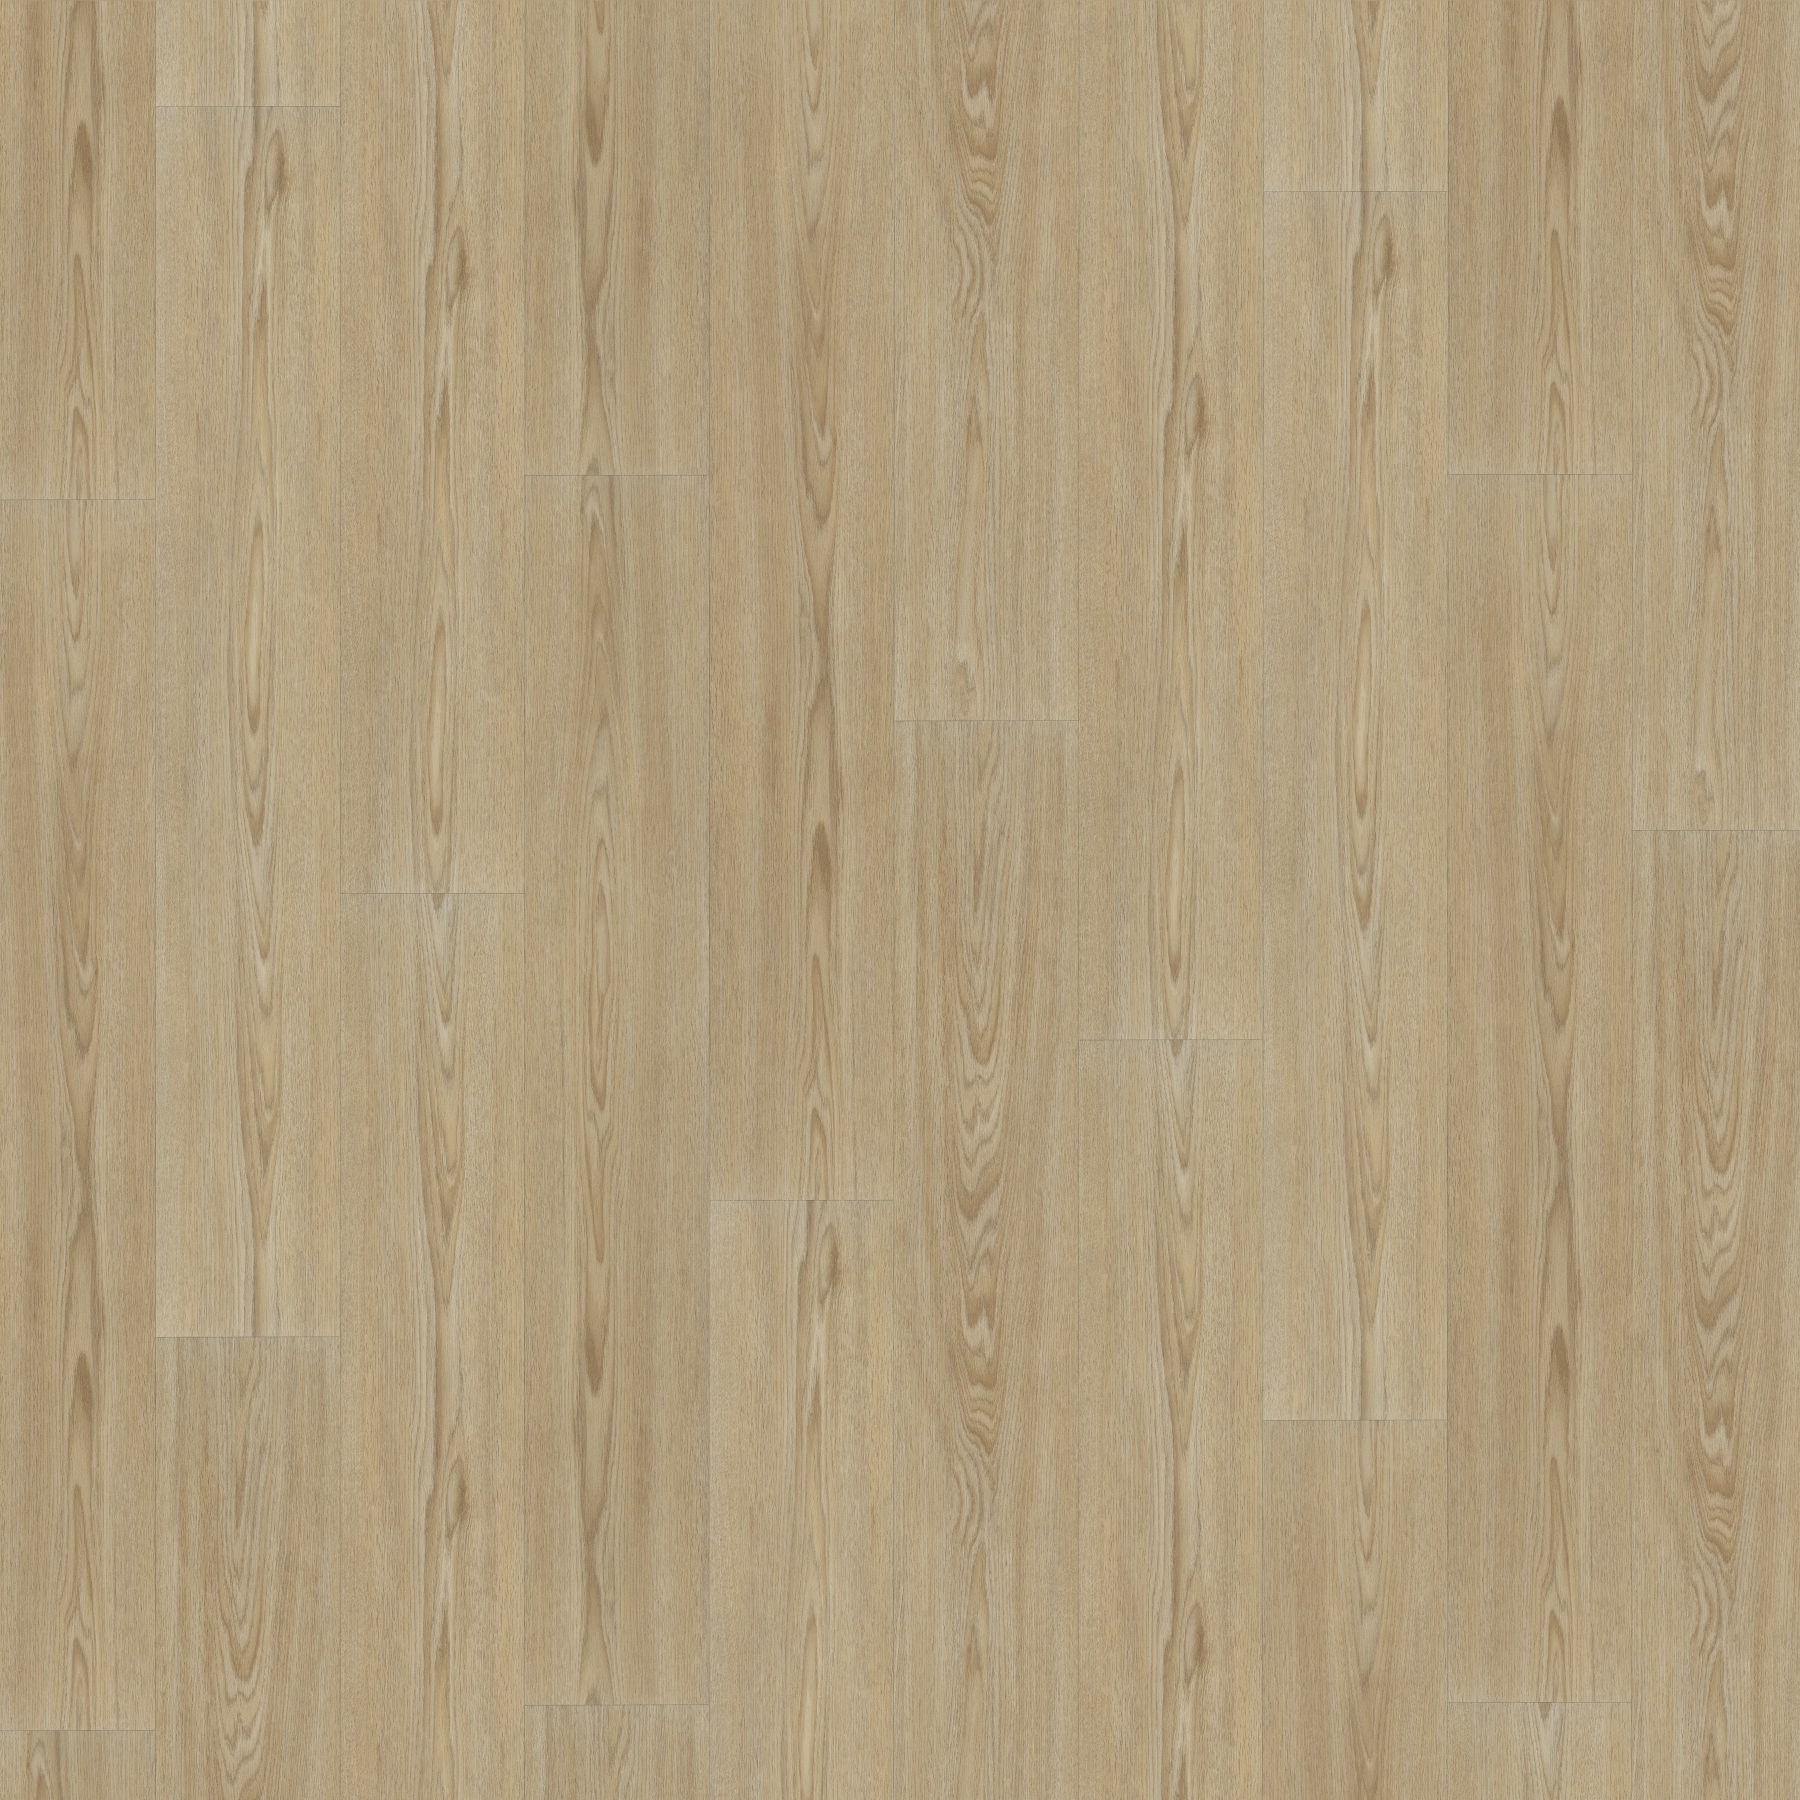 design floor lvt cream oak j 40010 04 jab anstoetz flooring. Black Bedroom Furniture Sets. Home Design Ideas